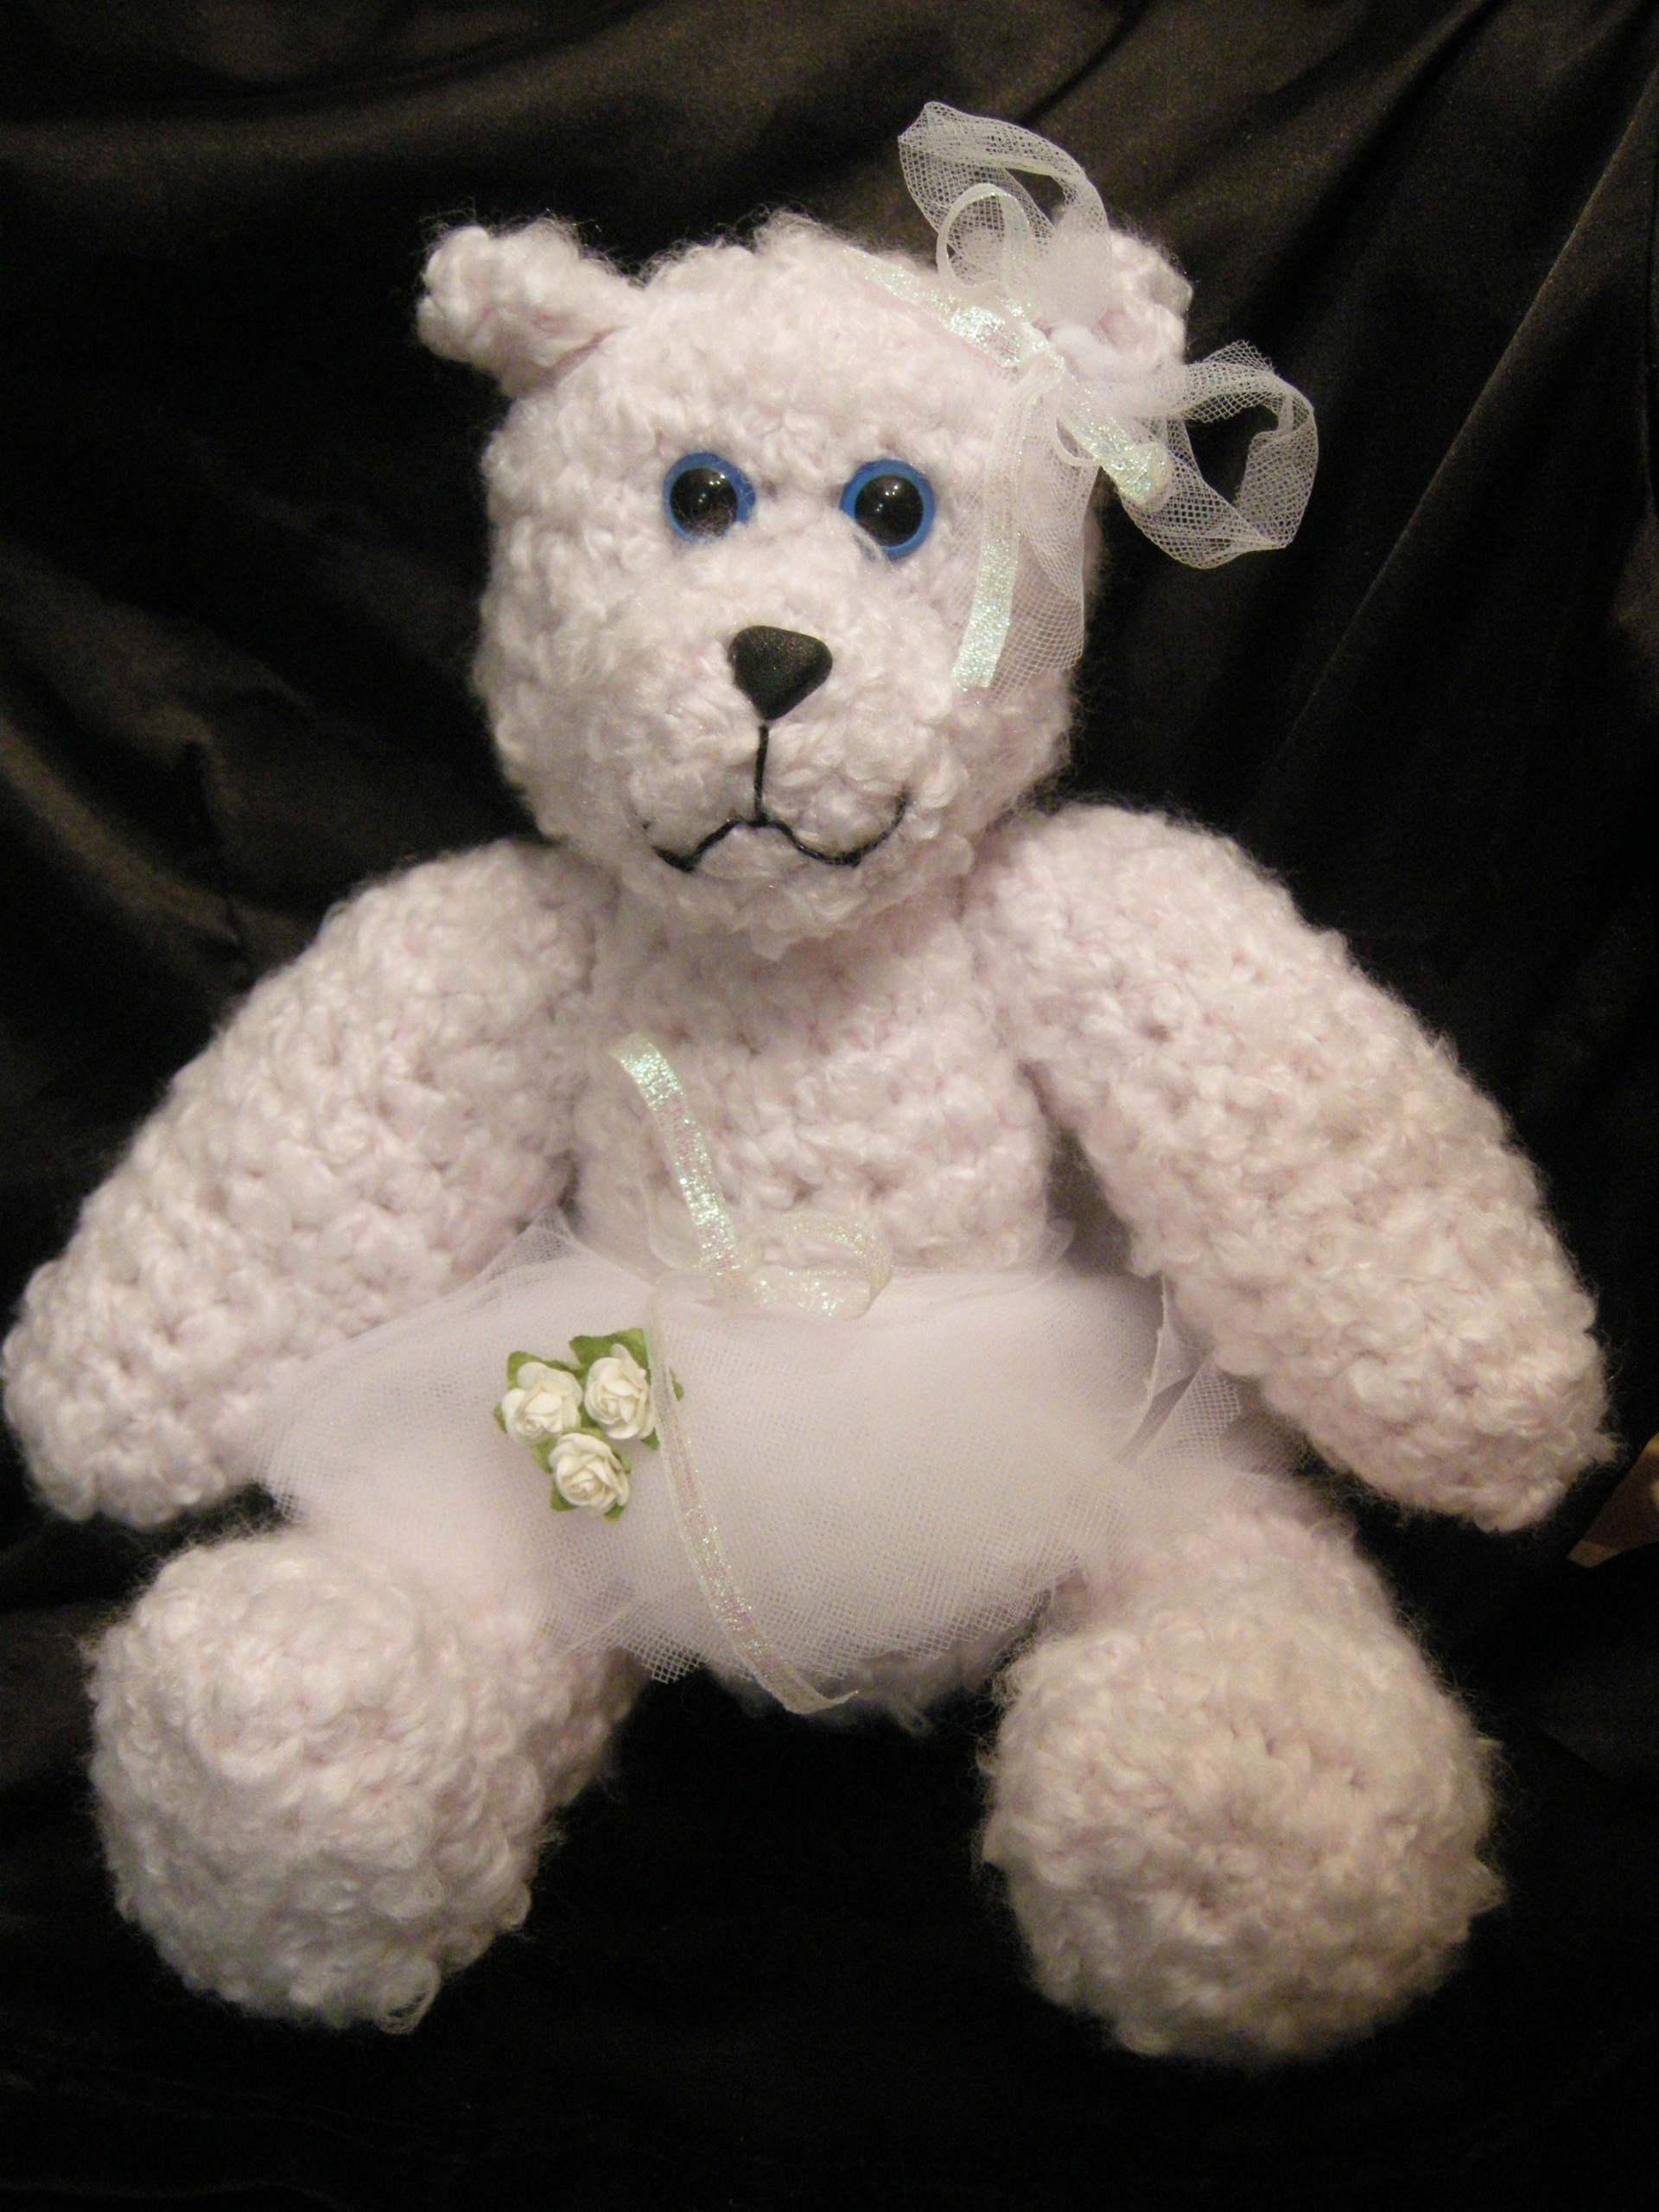 New Teddy Bears Images Teddy Bears for Sale at Stuffed Bears for Sale Of New 48 Ideas Stuffed Bears for Sale